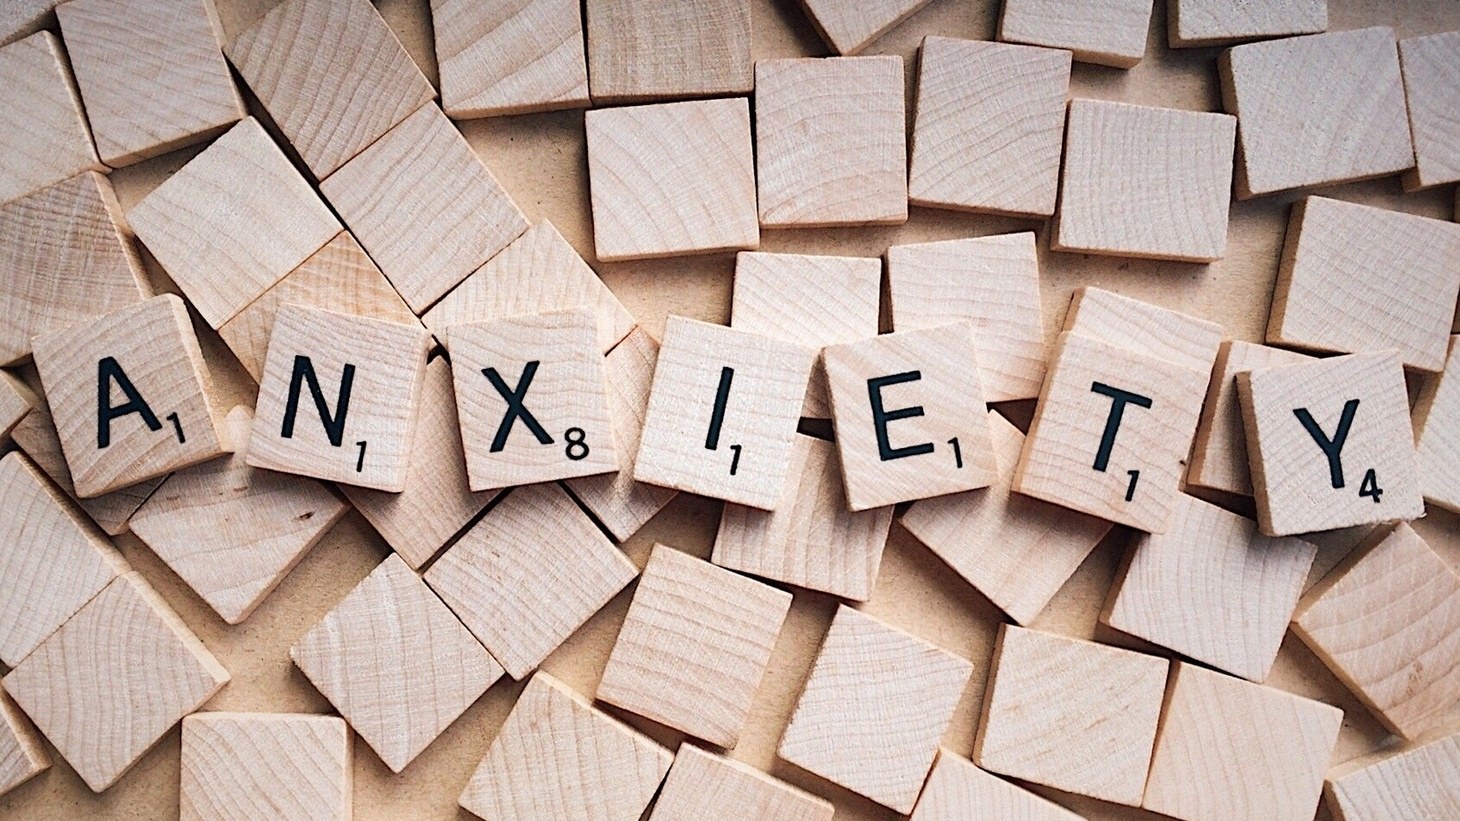 Anxiety is a common problem for most of us, especially during a global pandemic but also a bad habit we can learn to control.